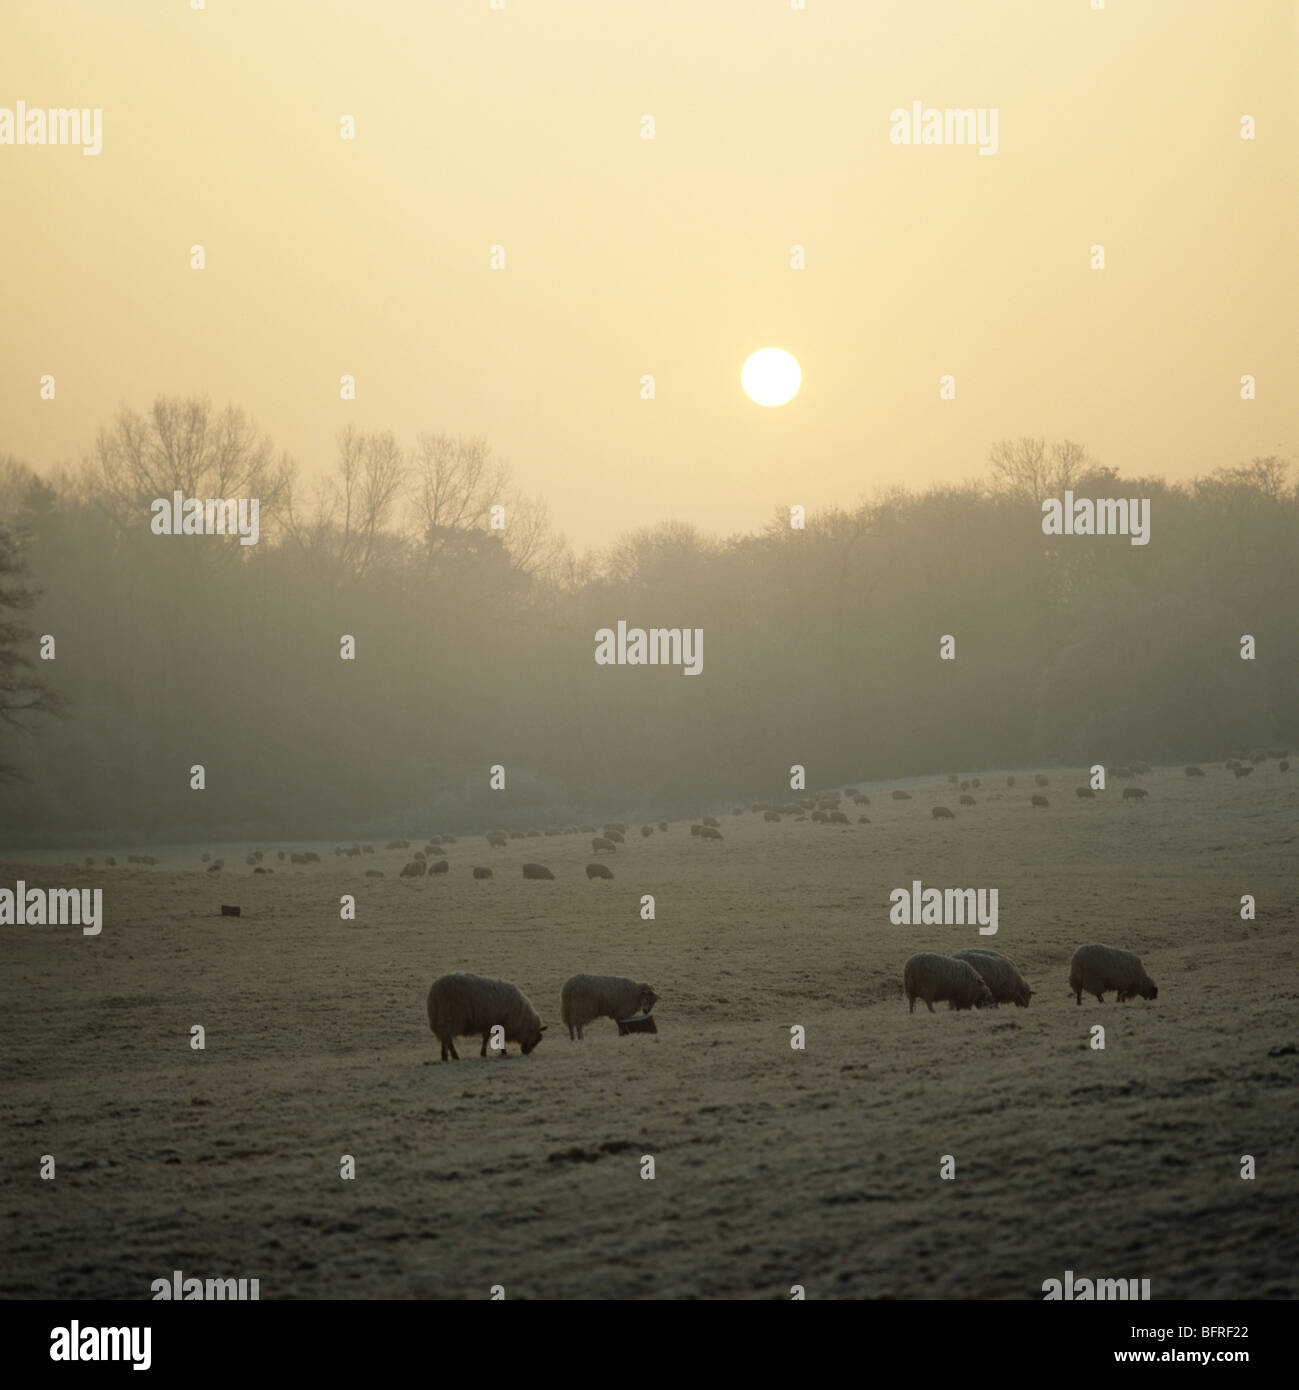 Pasture with grazing sheep on a cold frosty, misty winter morning as the sun rises, Berkshire - Stock Image